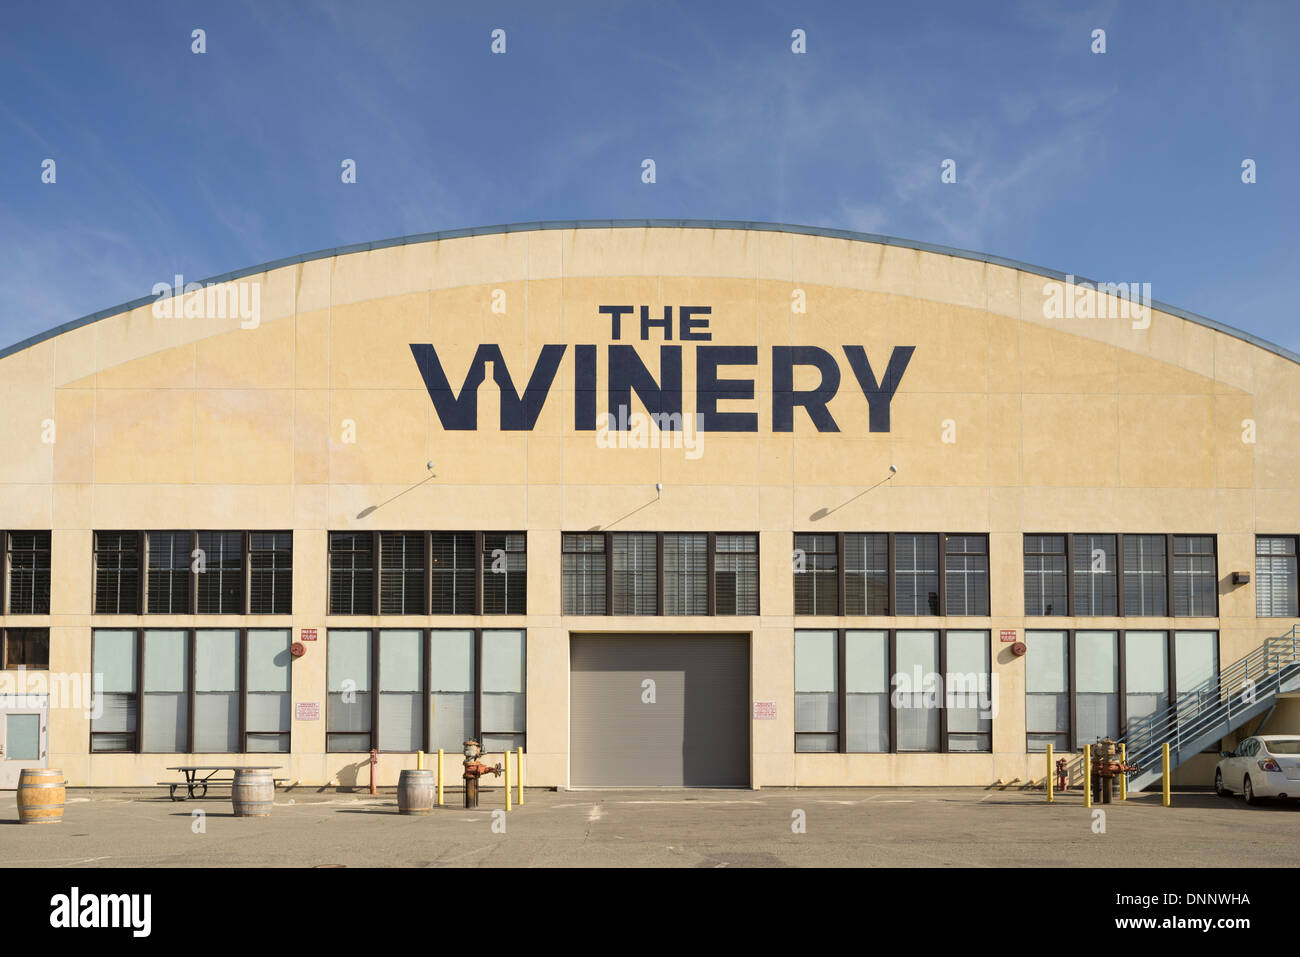 The Winery SF. - Stock Image